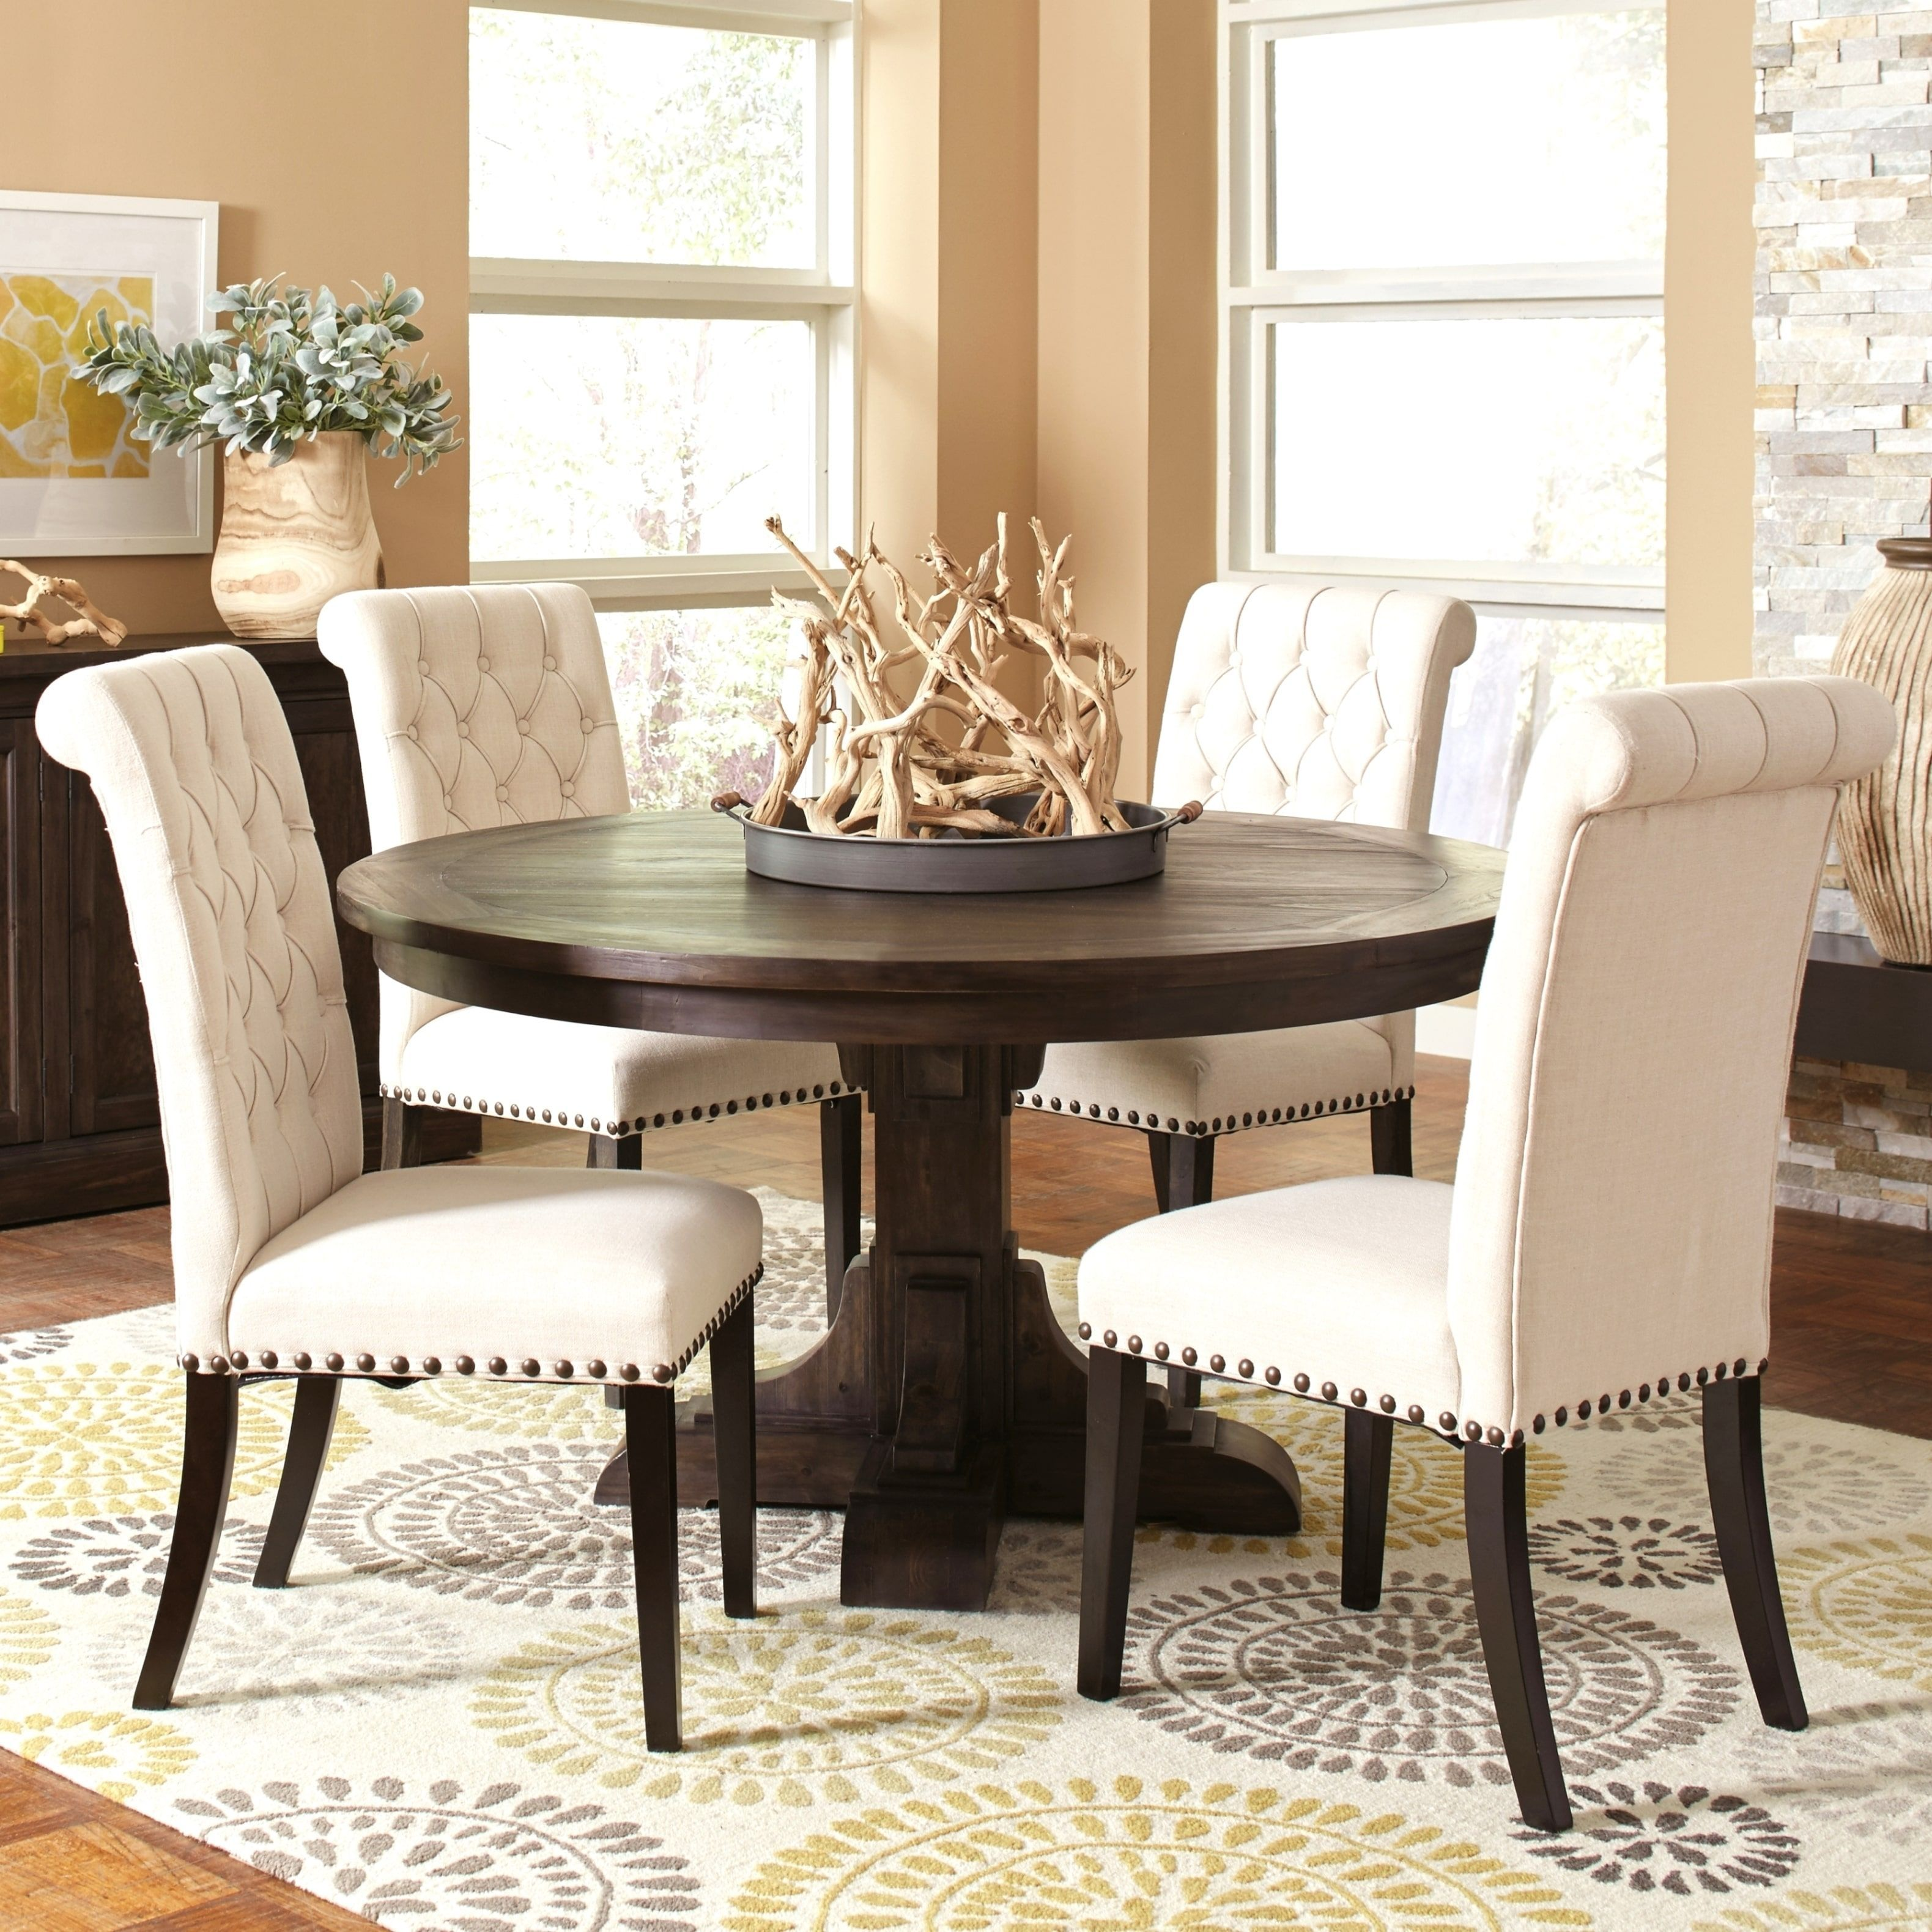 French Baroque Designed Round Dining Set With Rolled Back Button